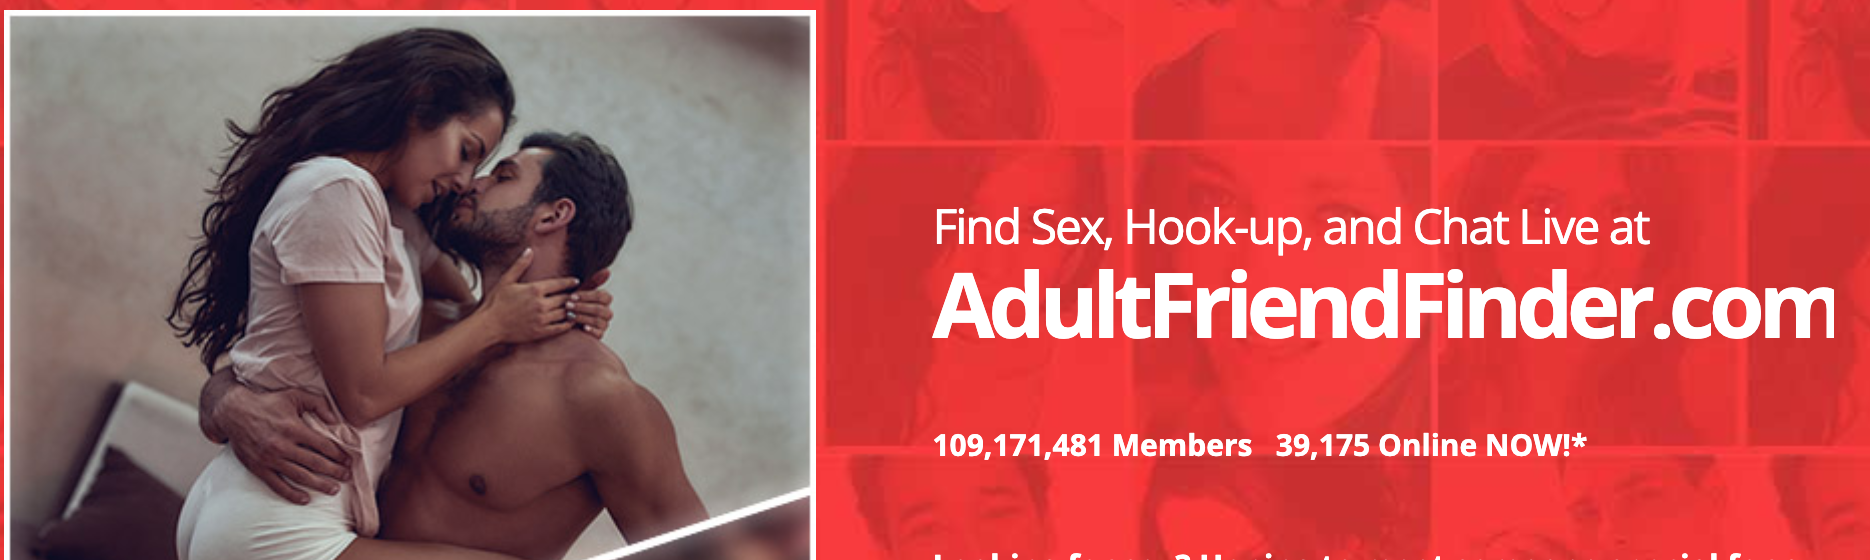 final overview of adult friend finder dating site